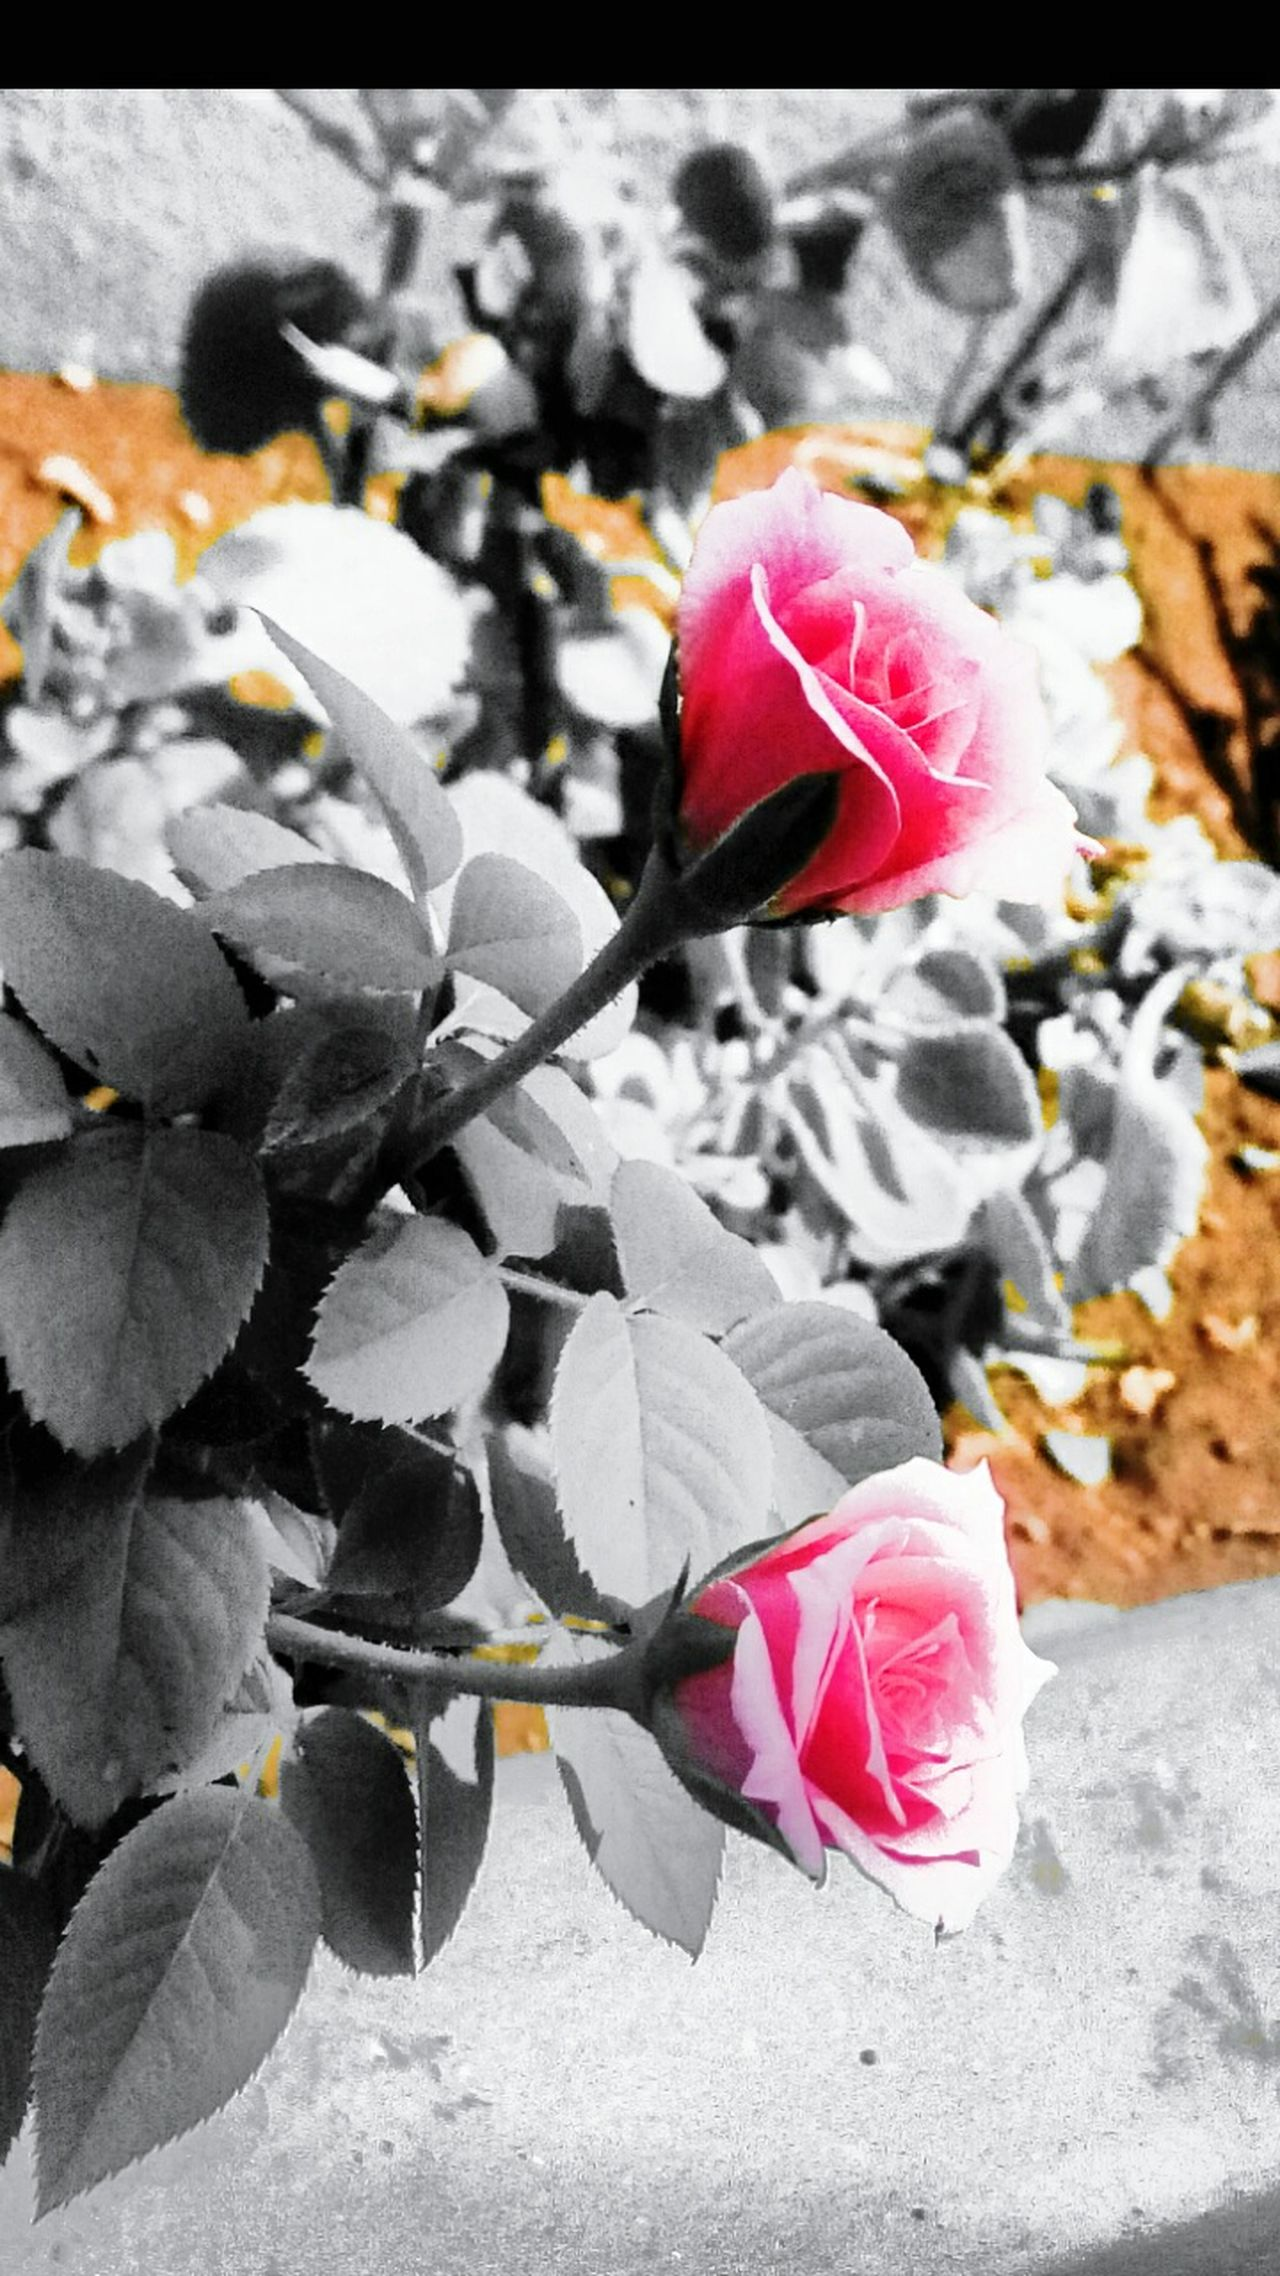 Pink And Black Pink Flowers Pink And Orange Black And White Photography Black And White With A Splash Of Colour B L A C K A N D W H I T E